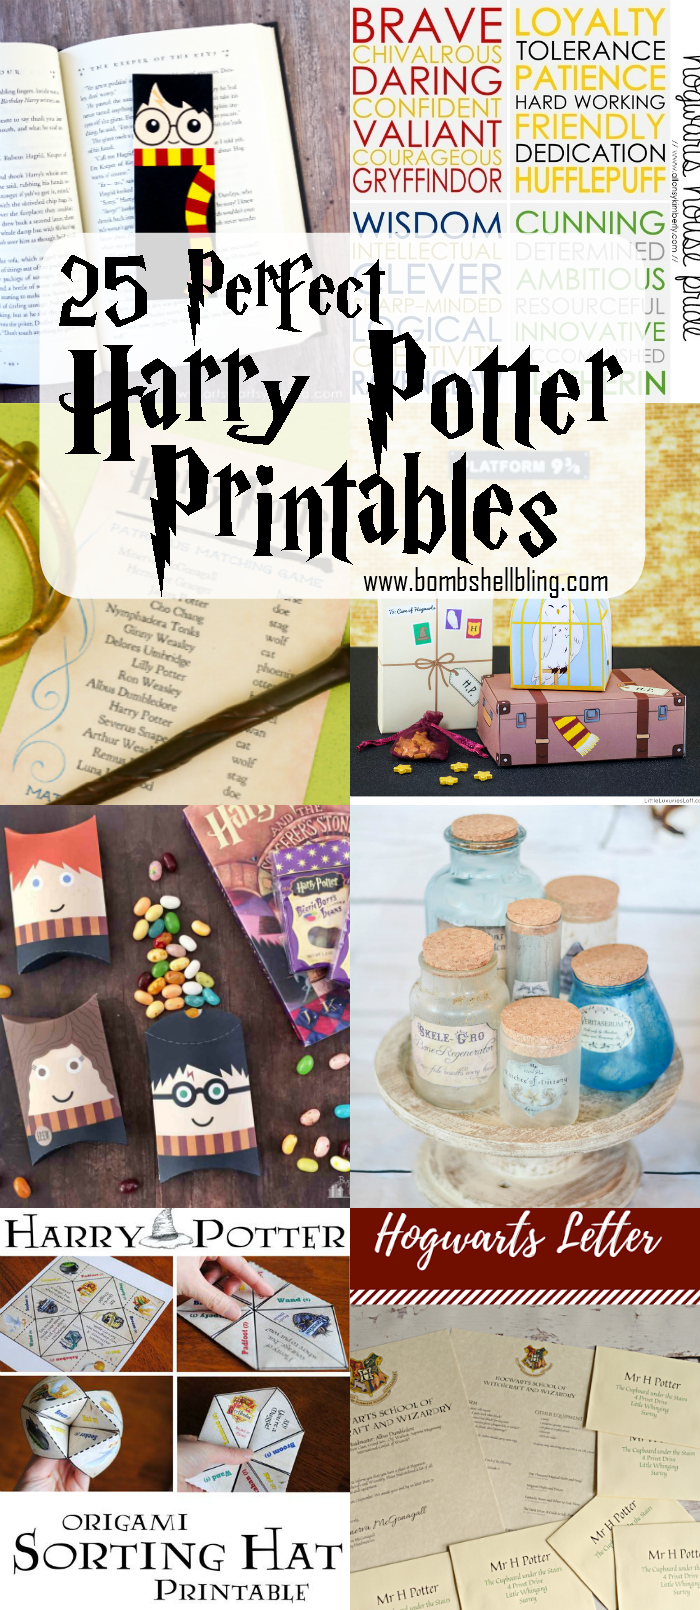 25 Perfect Harry Potter Printables